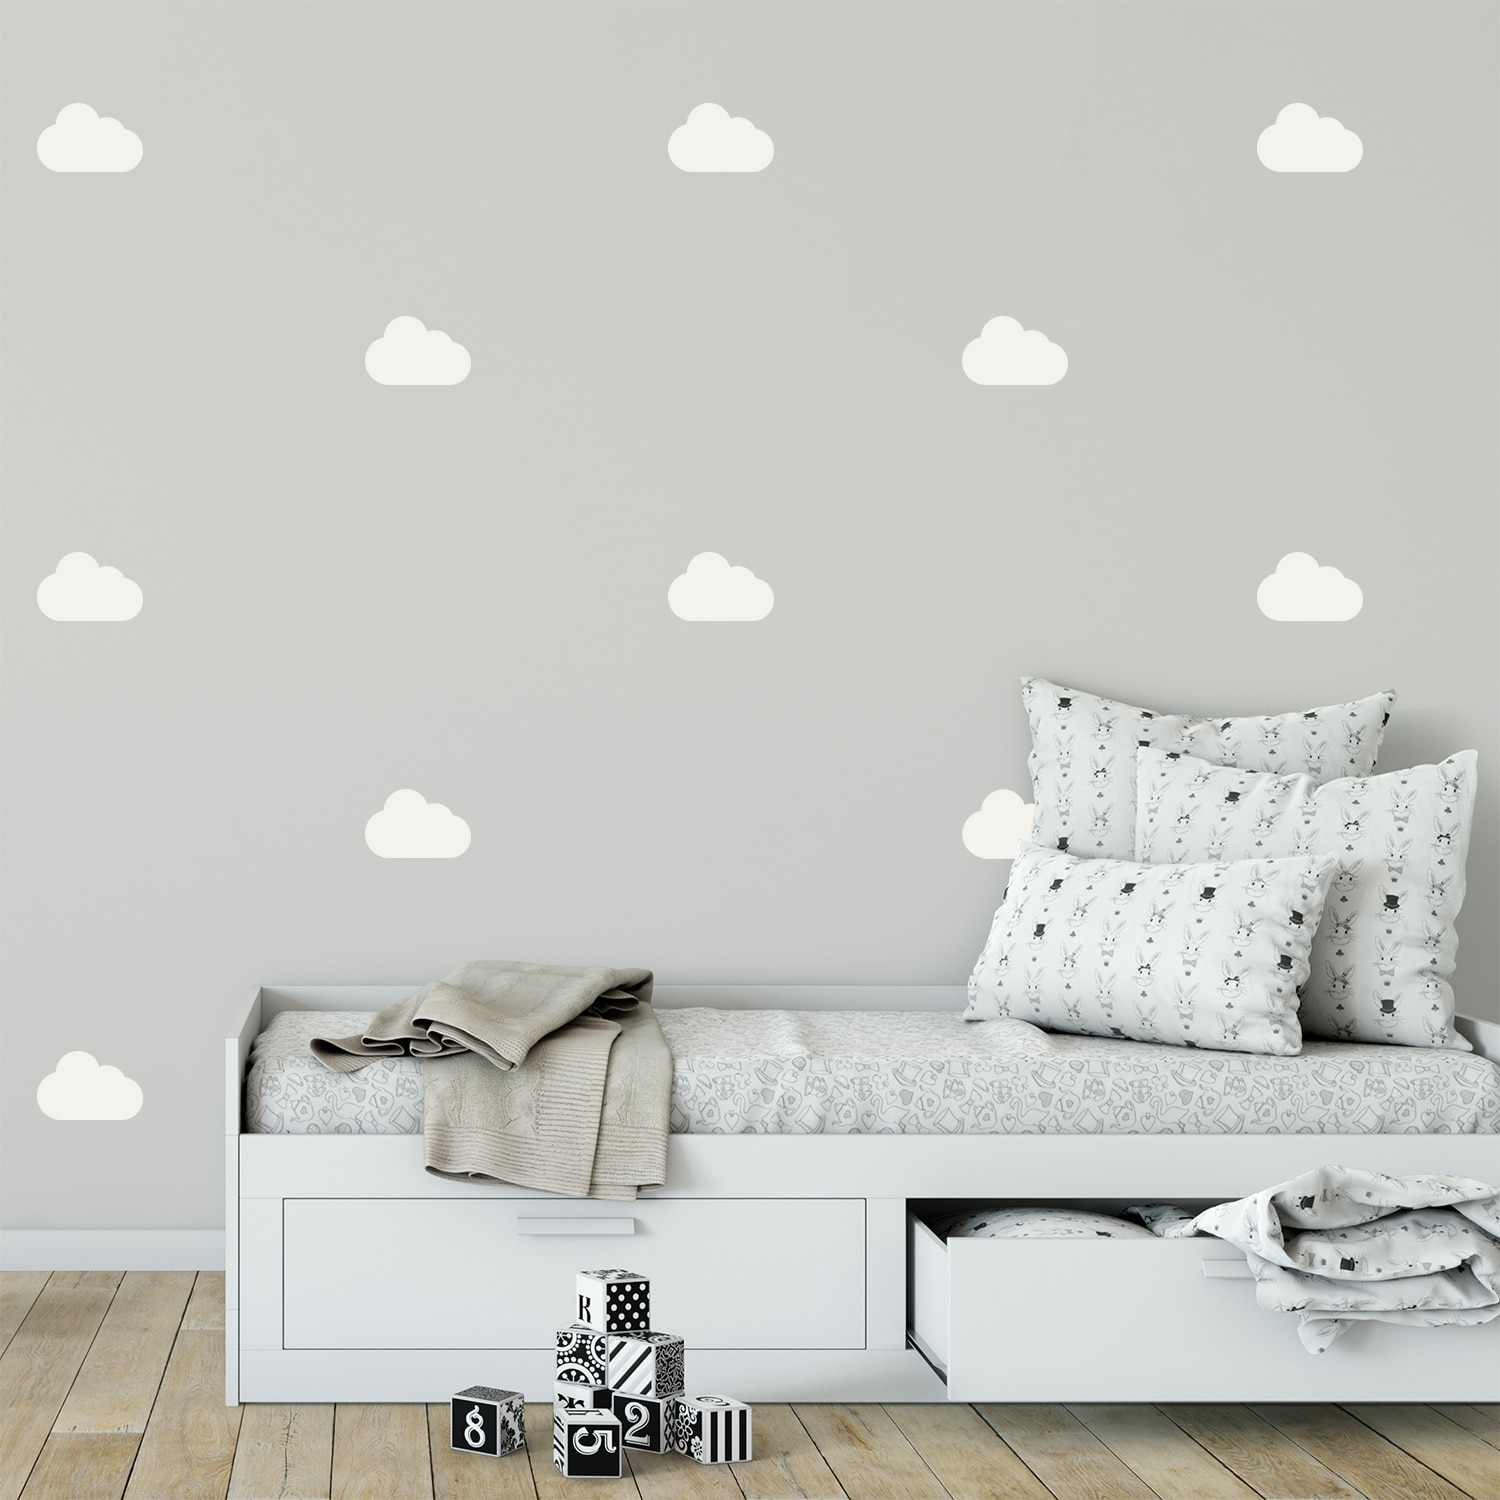 Sticker Déco - Kit de 18 stickers Nuages - Stickrs ®